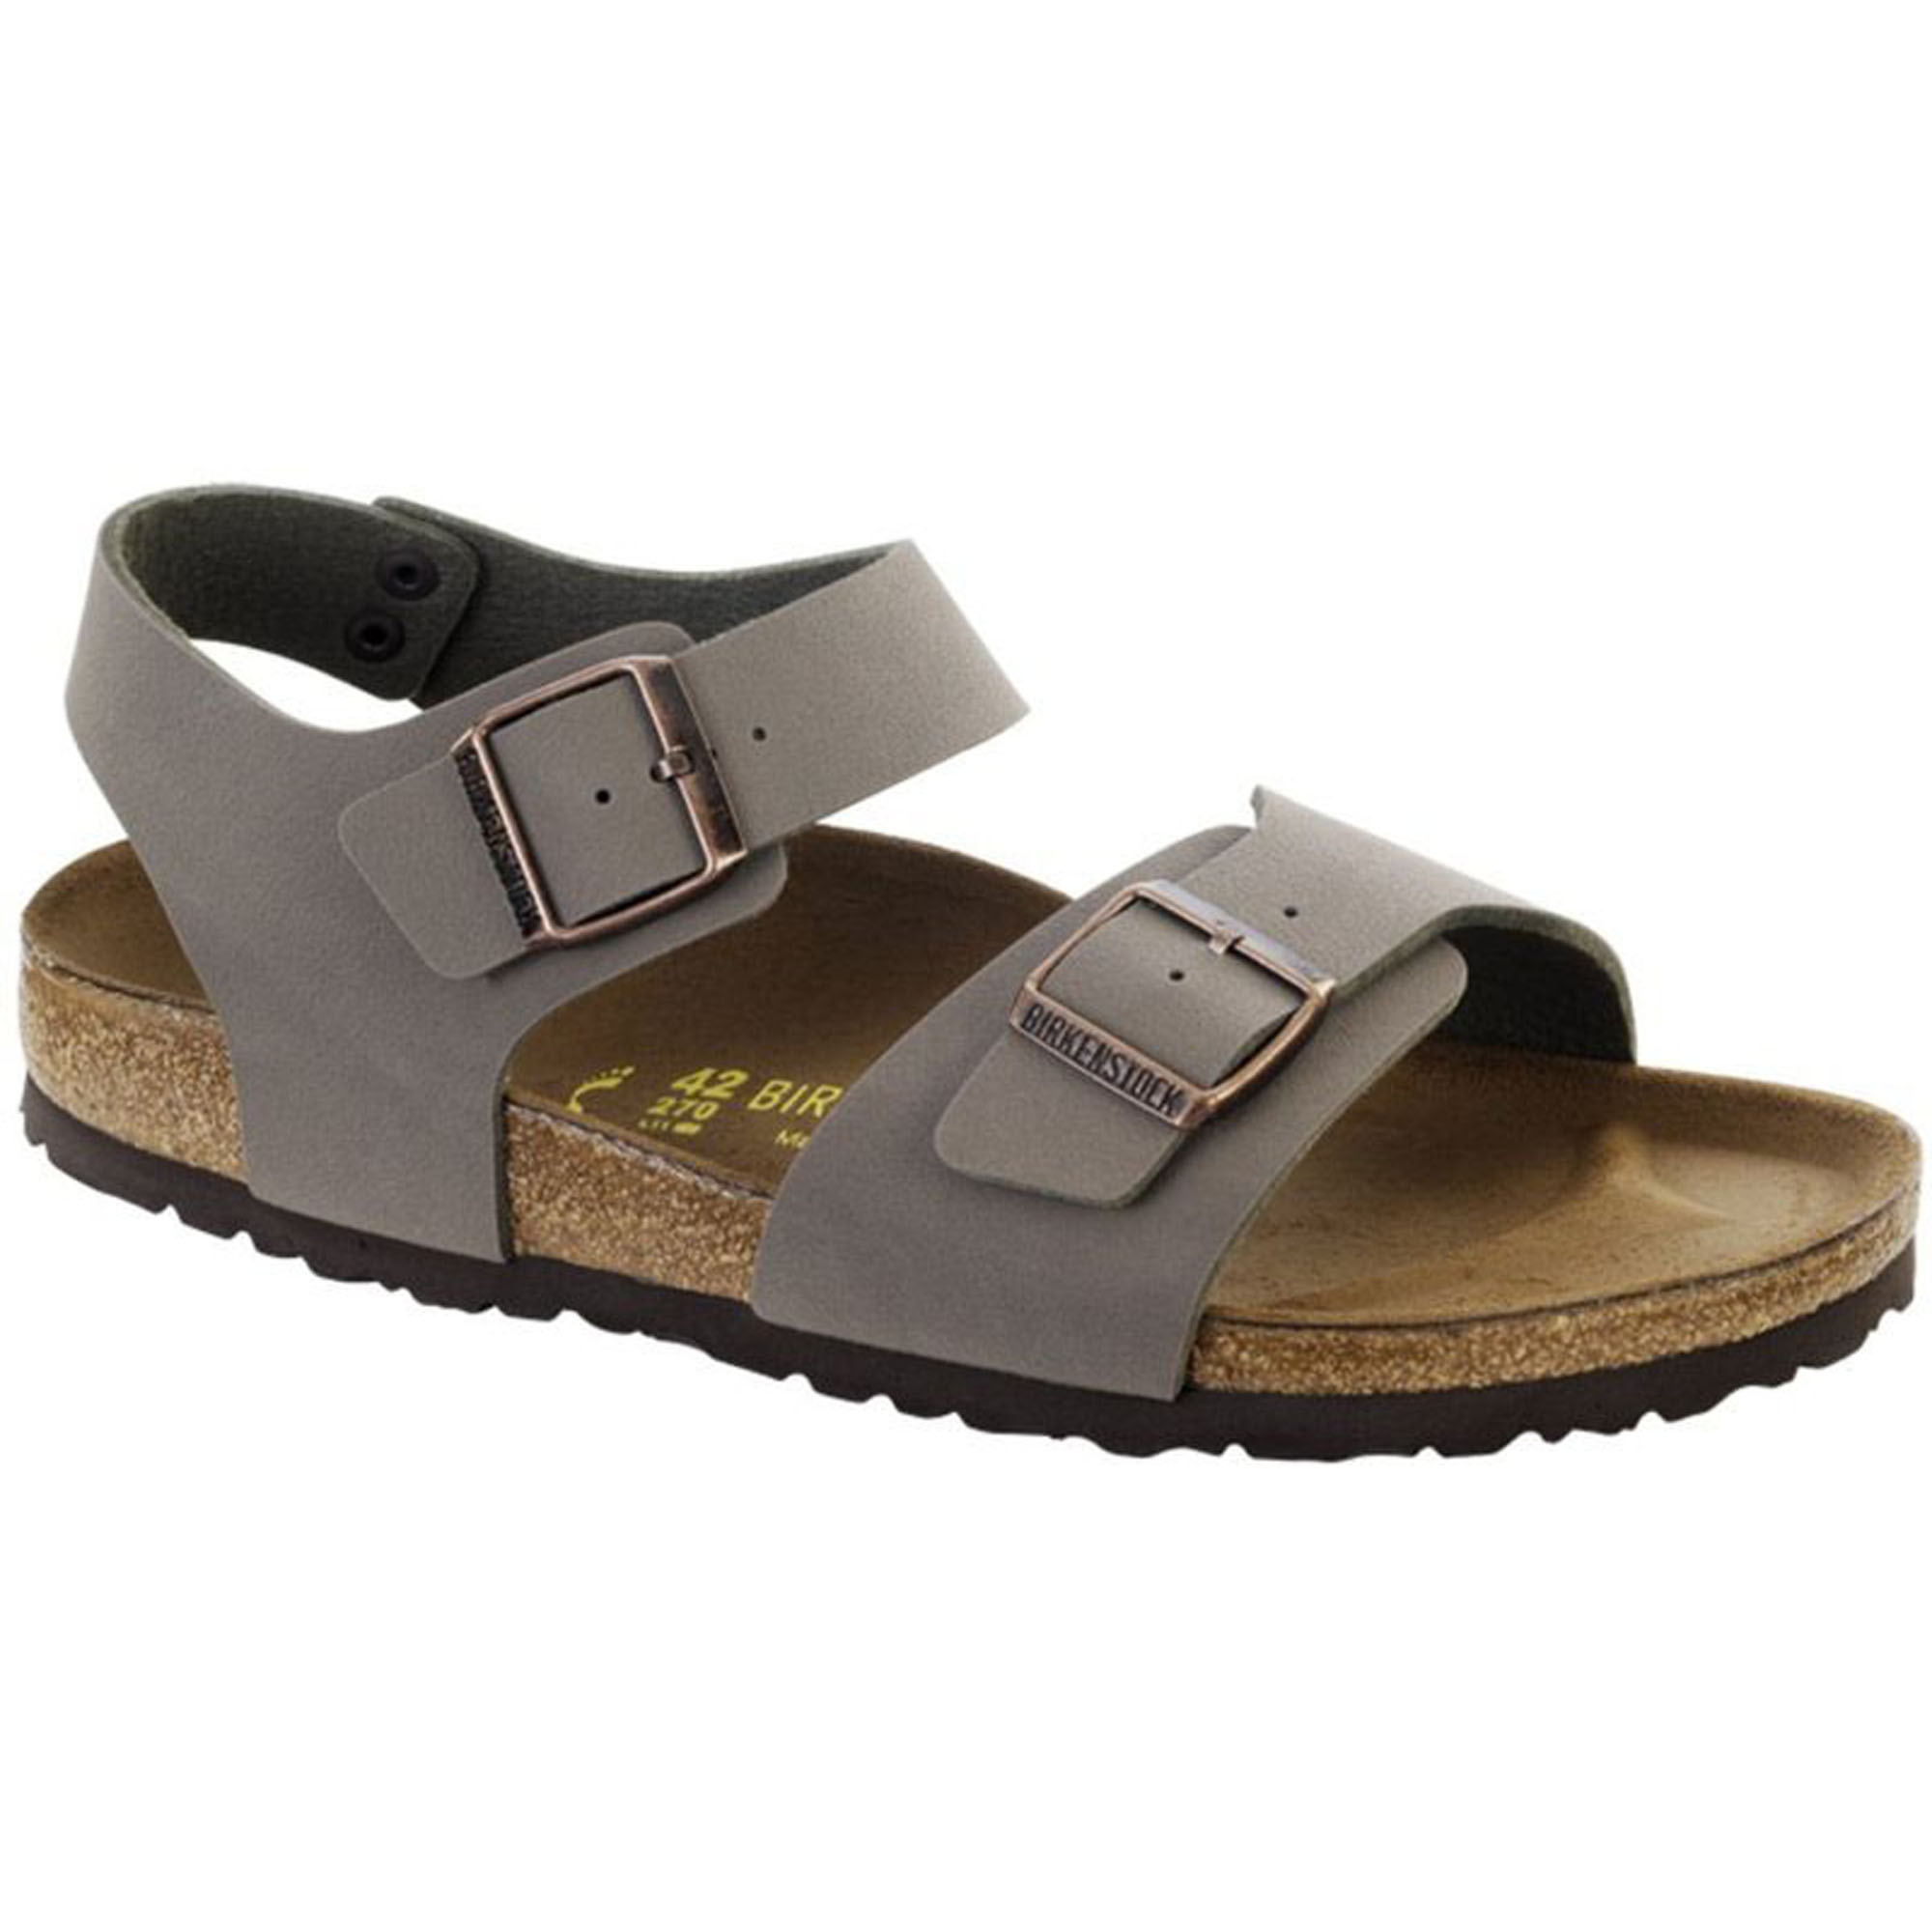 Today it is your feet s change  clean them in warm water and dried  birkenstock como sandals them ... 2d684e4bb65